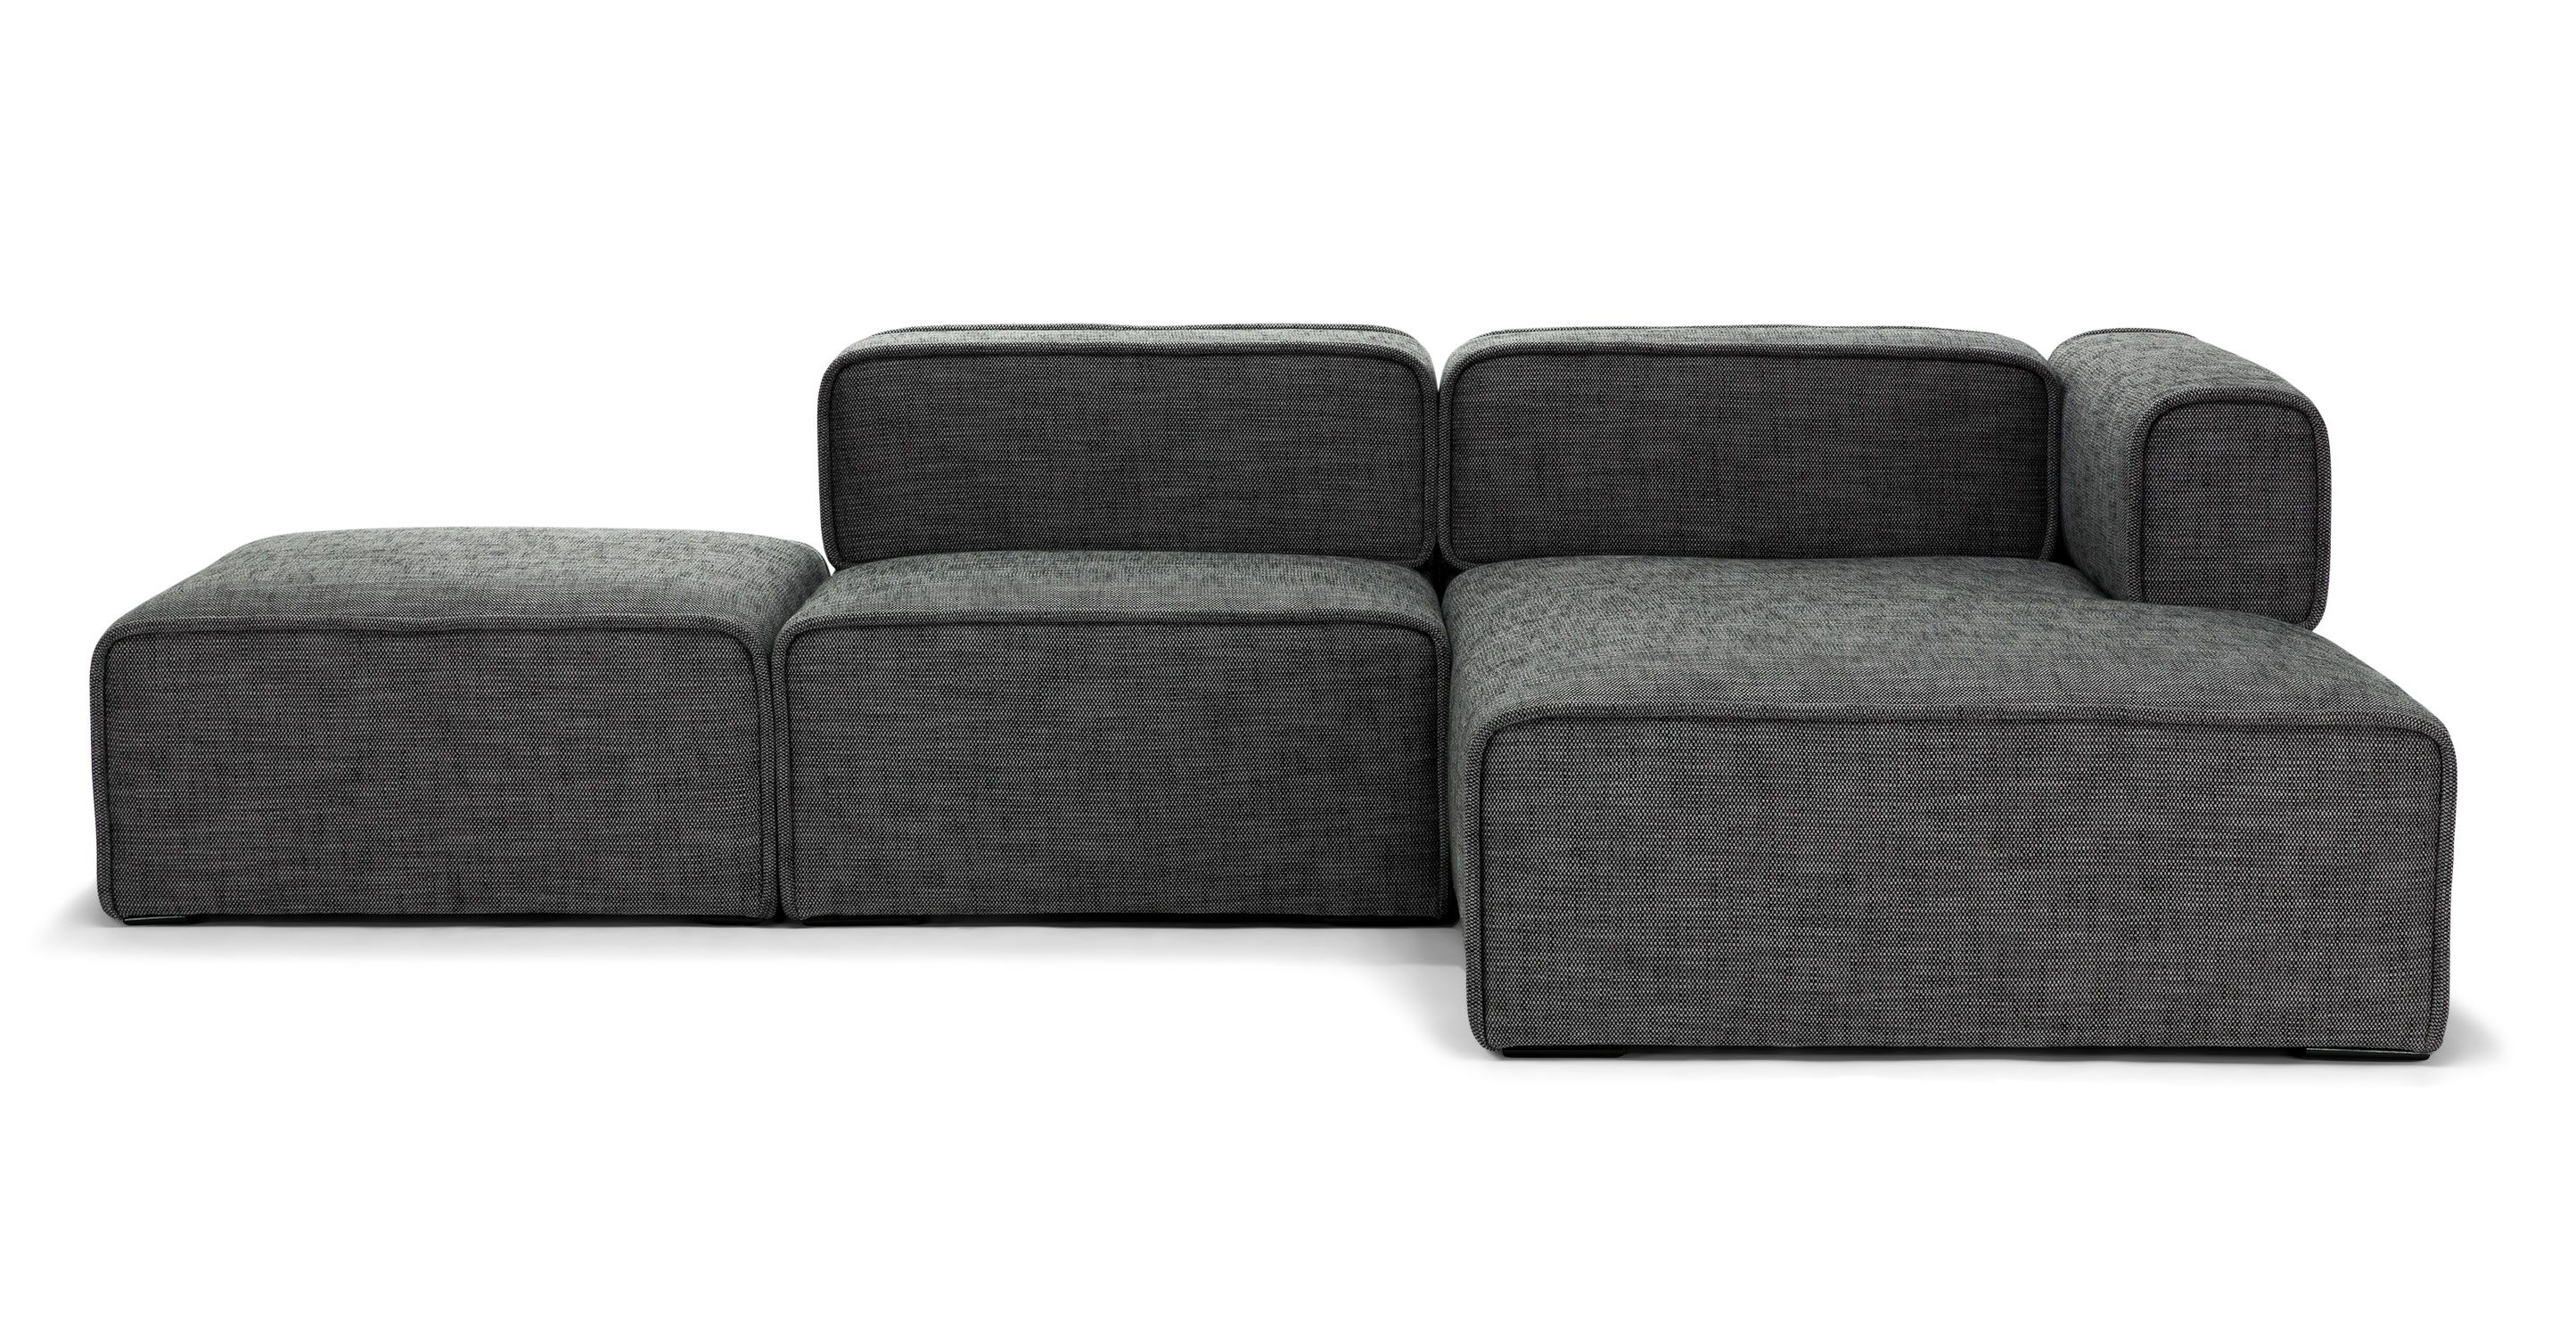 Gray Modular Right Sectional Upholstered